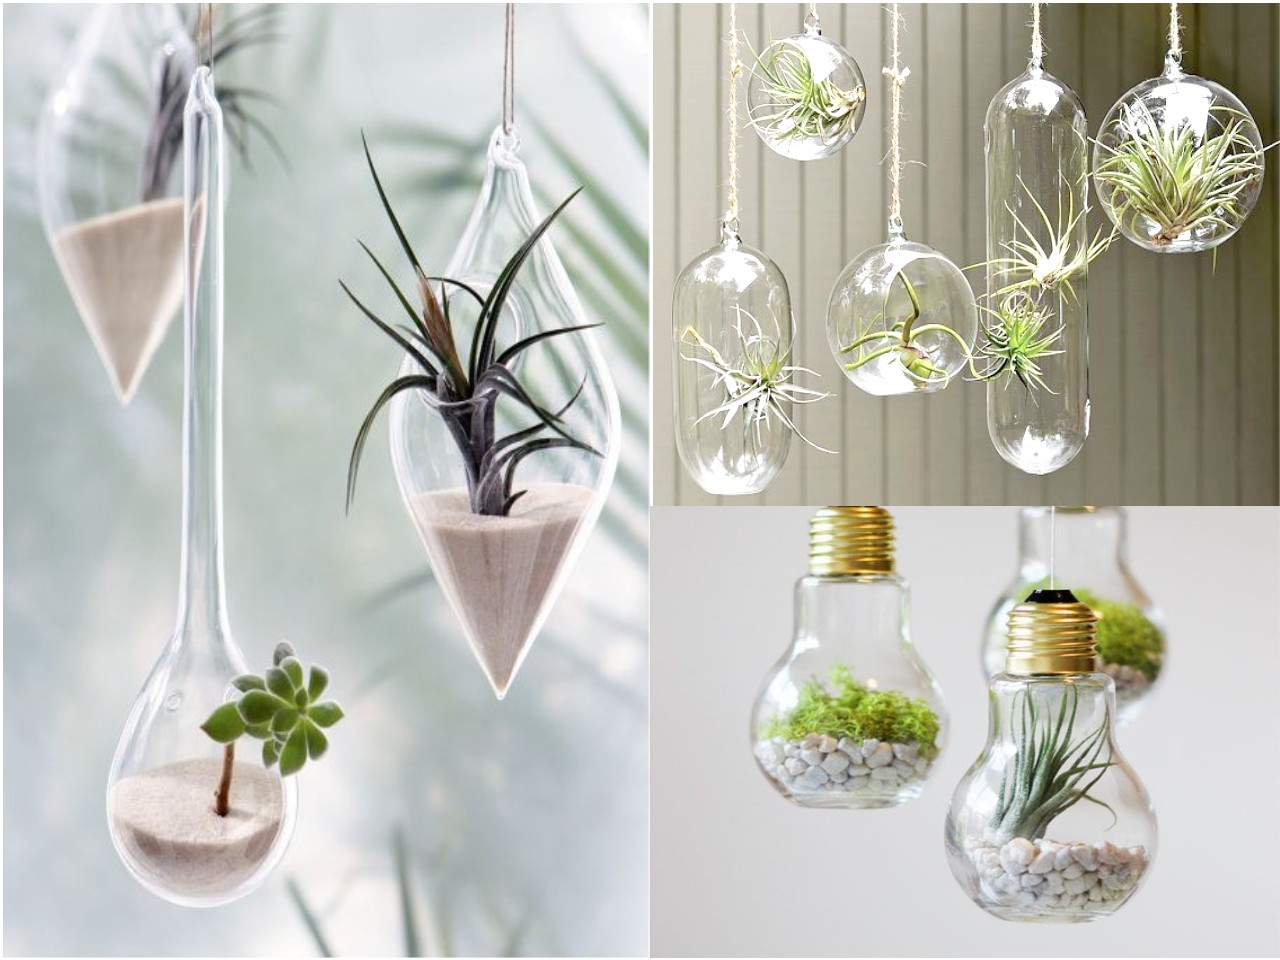 10 ideas de decoraci n con plantas colgantes for Adornos para macetas